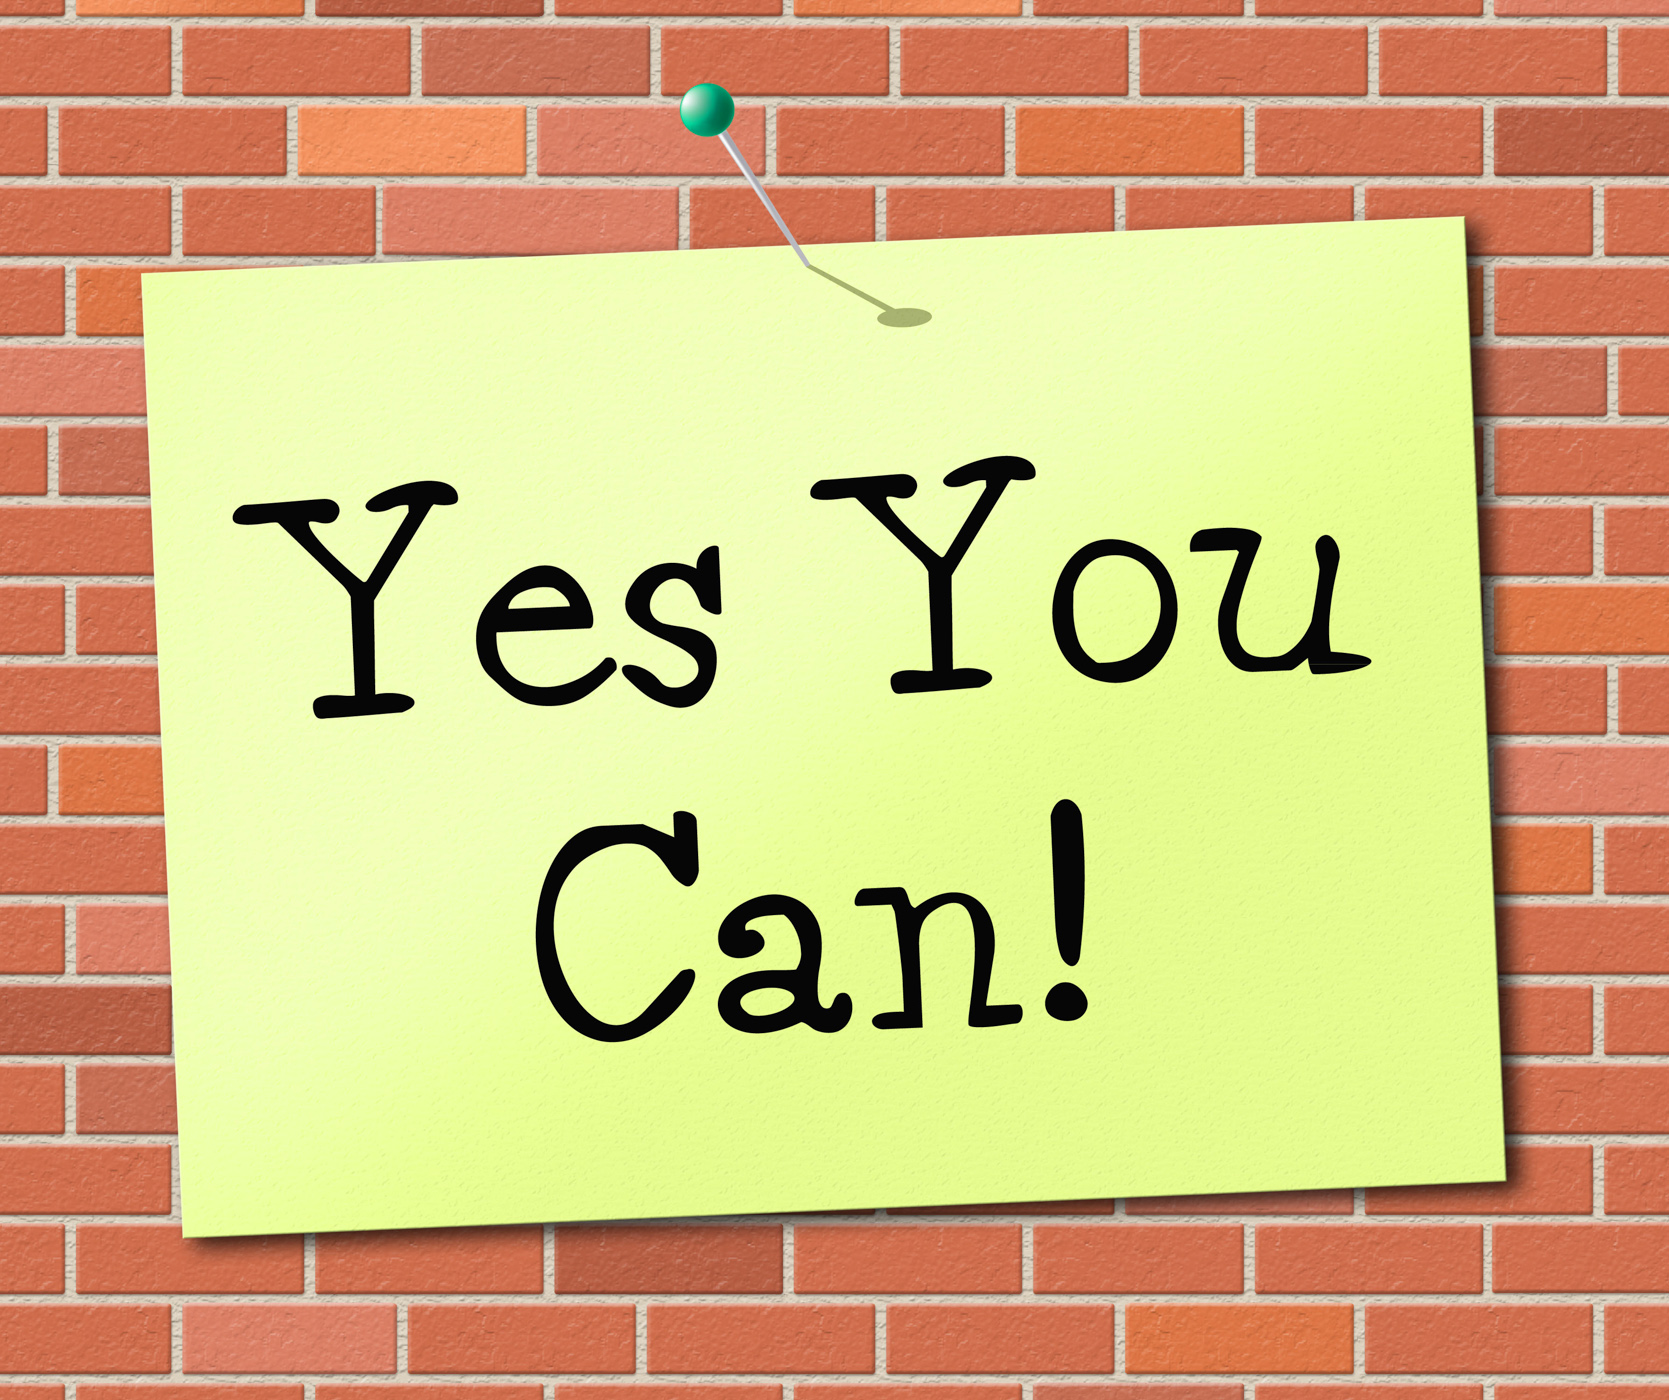 Yes you can means all right and agree photo